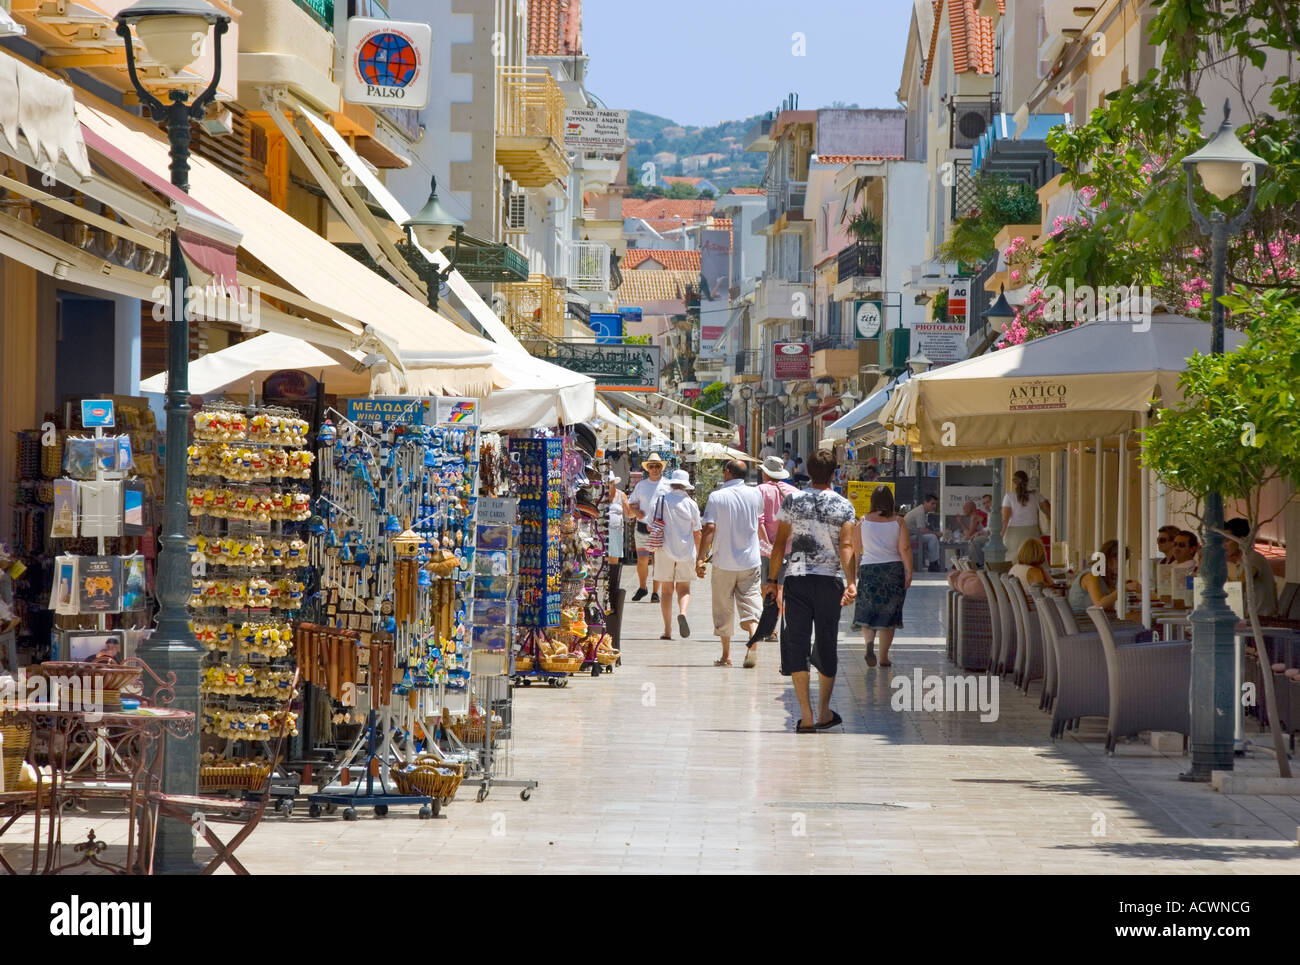 Argostoli Town, Kefalonia Stock Photo: 13237983 - Alamy